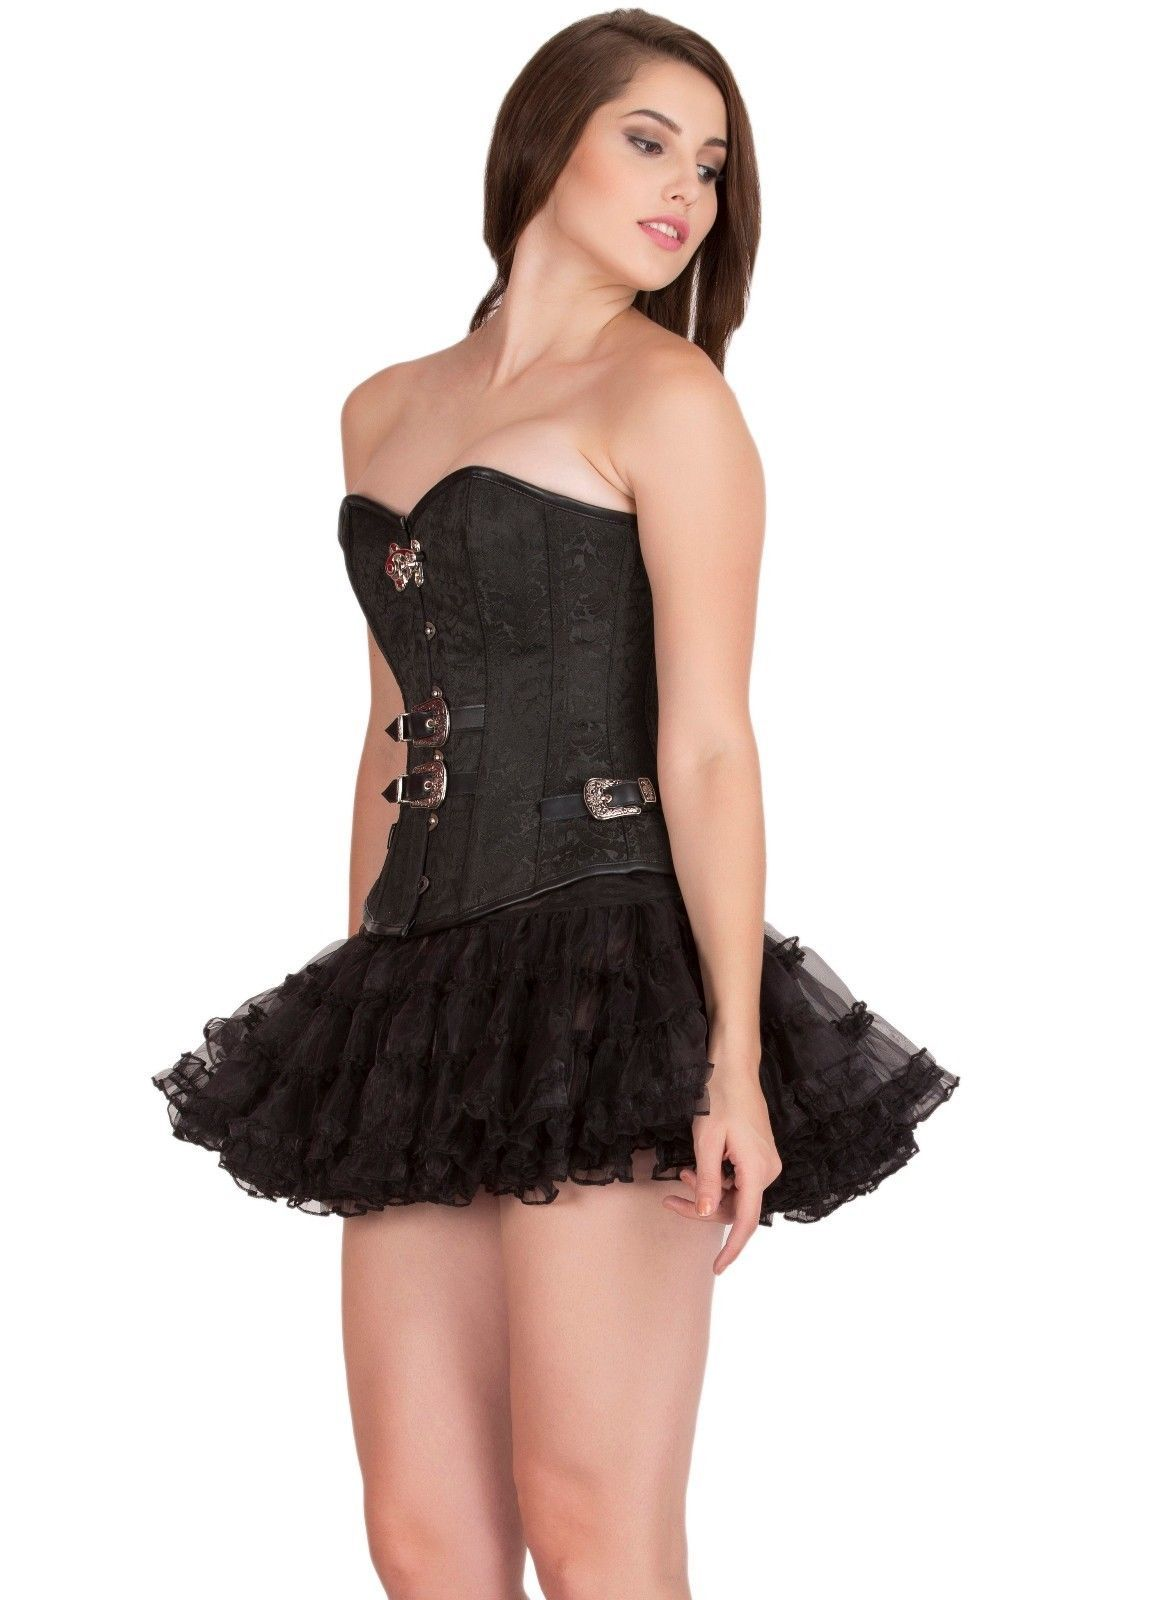 Black Brocade Leather Work Gothic Steampunk Costume Bustier Overbust Corset Top